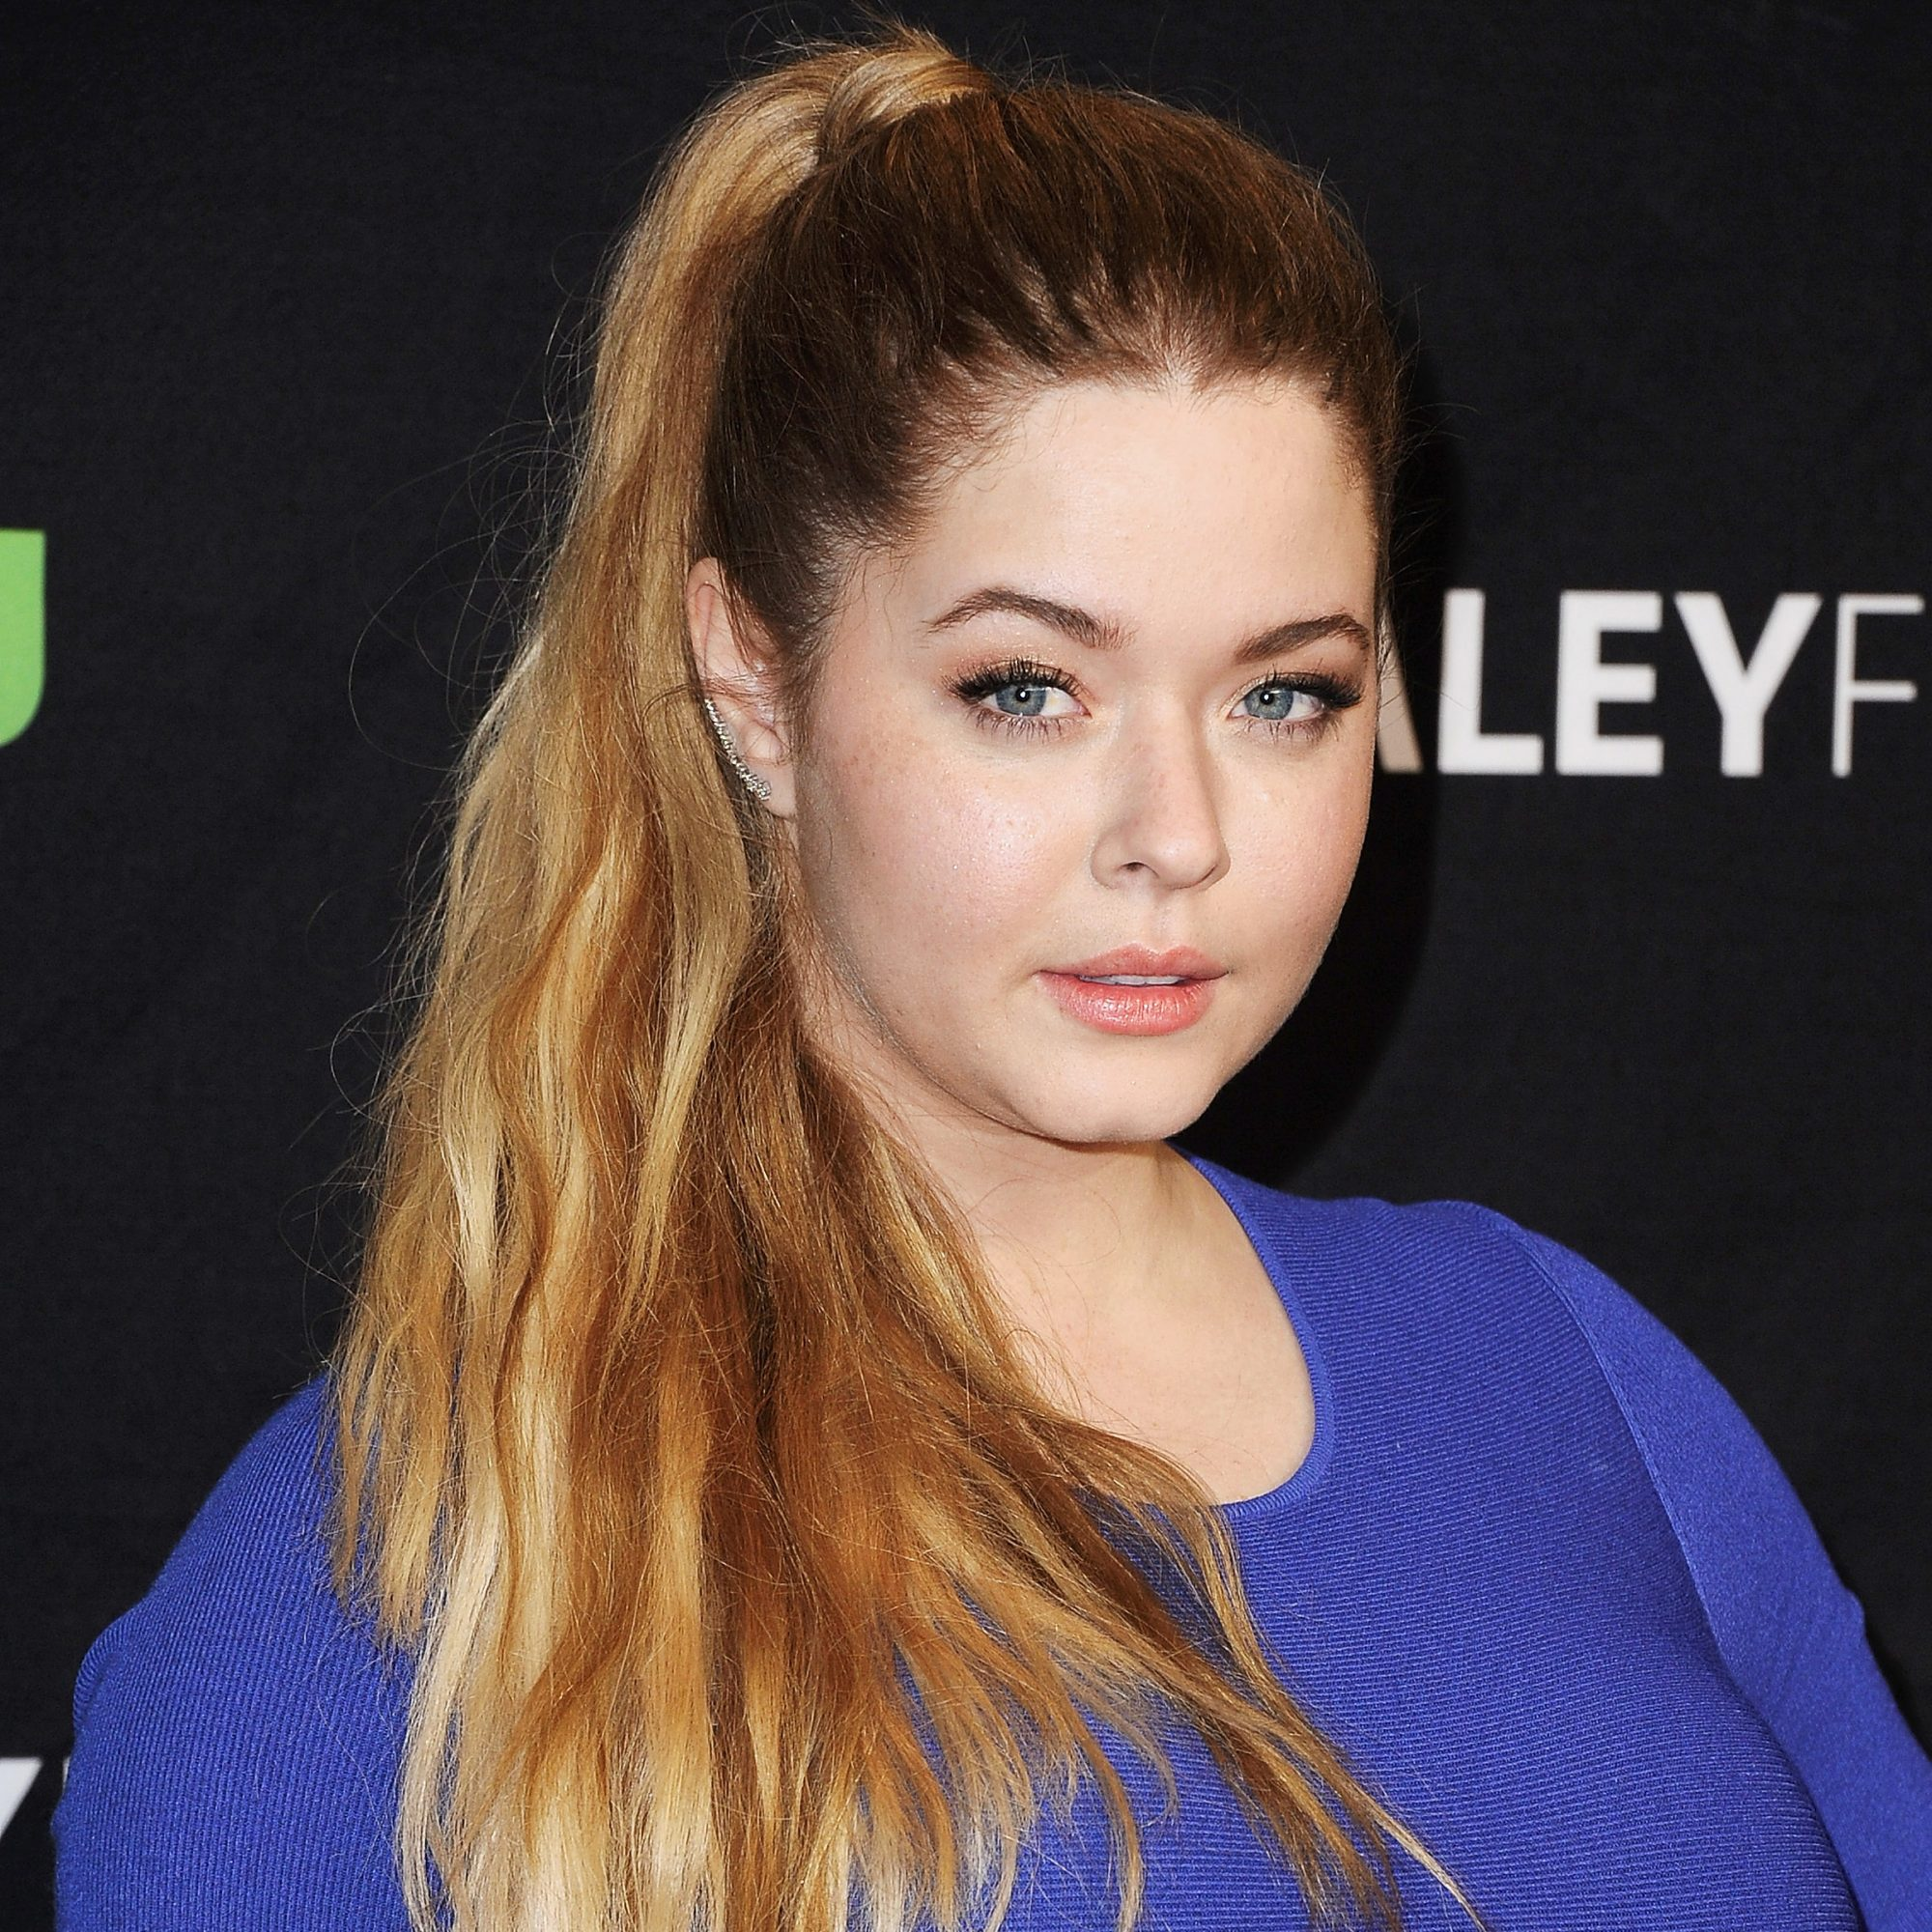 Celebs Who Revealed Health Issues in 2017 - Sasha Pieterse